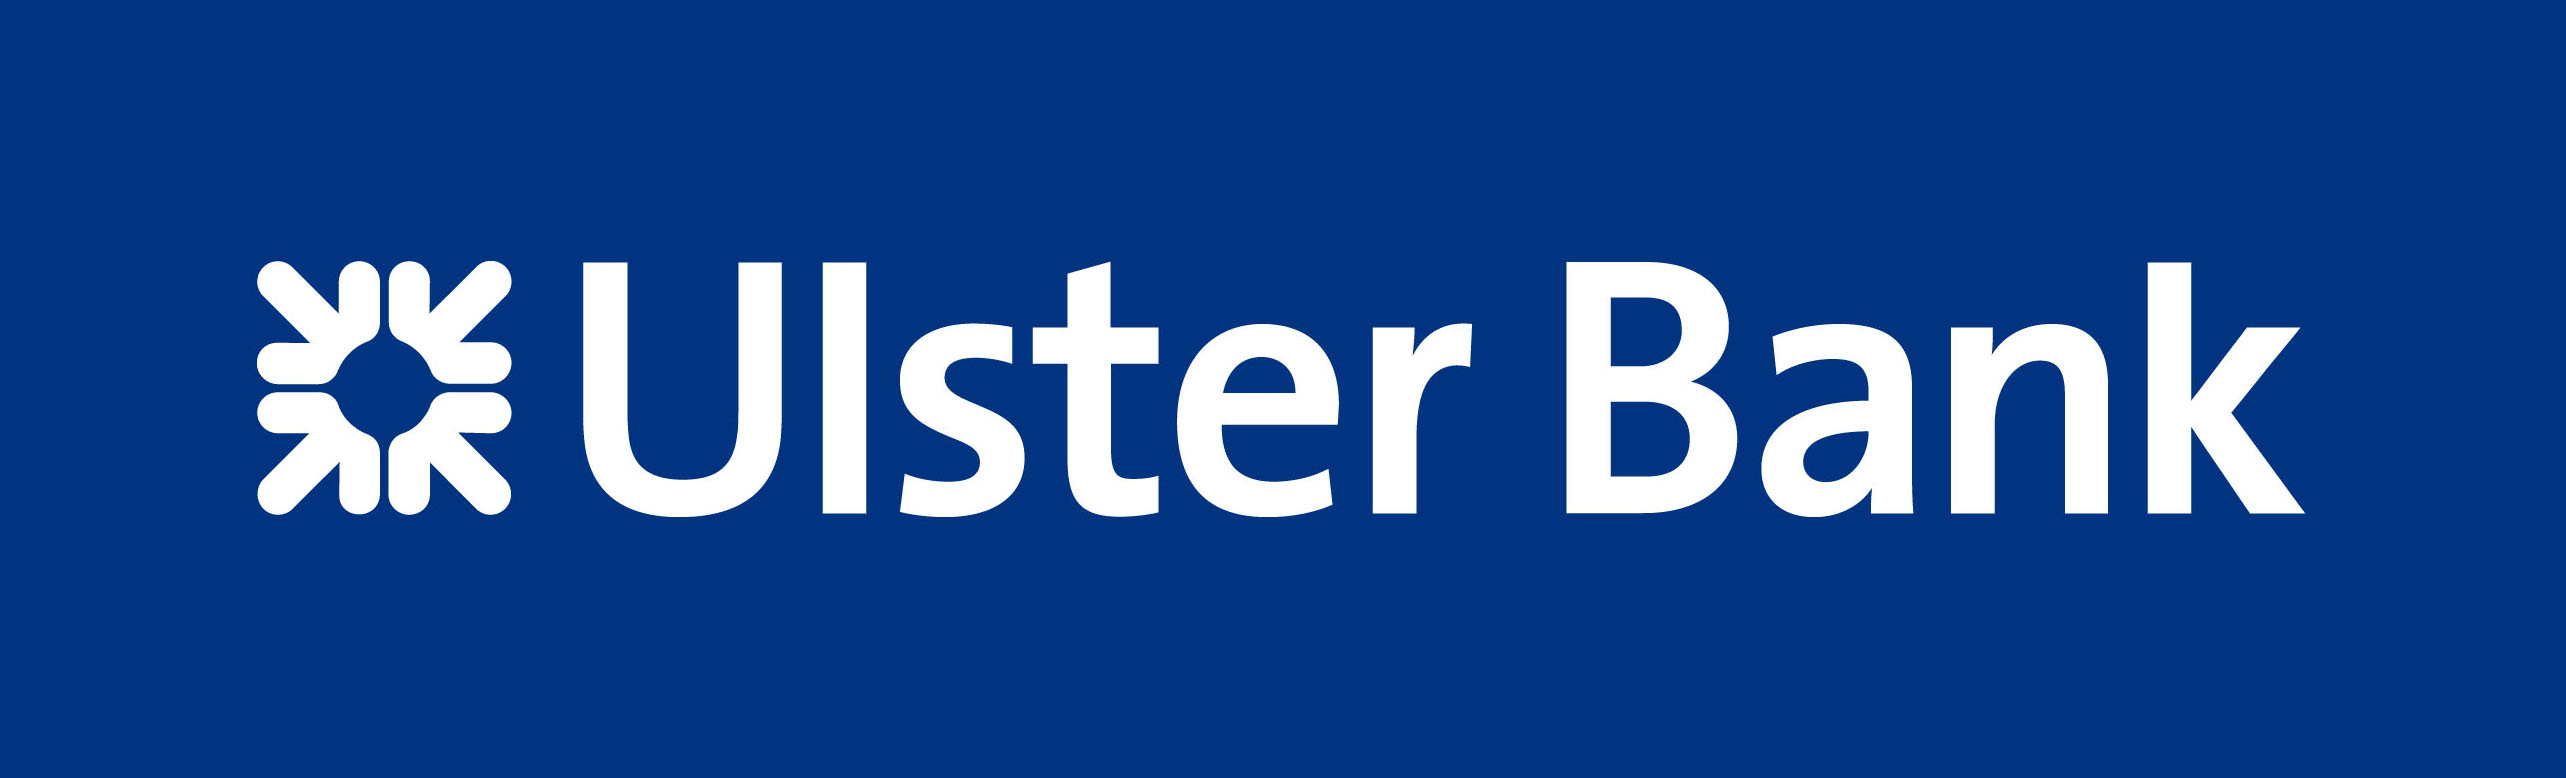 Ulster bank sells off loans for 360m - Standard bank head office contact details ...